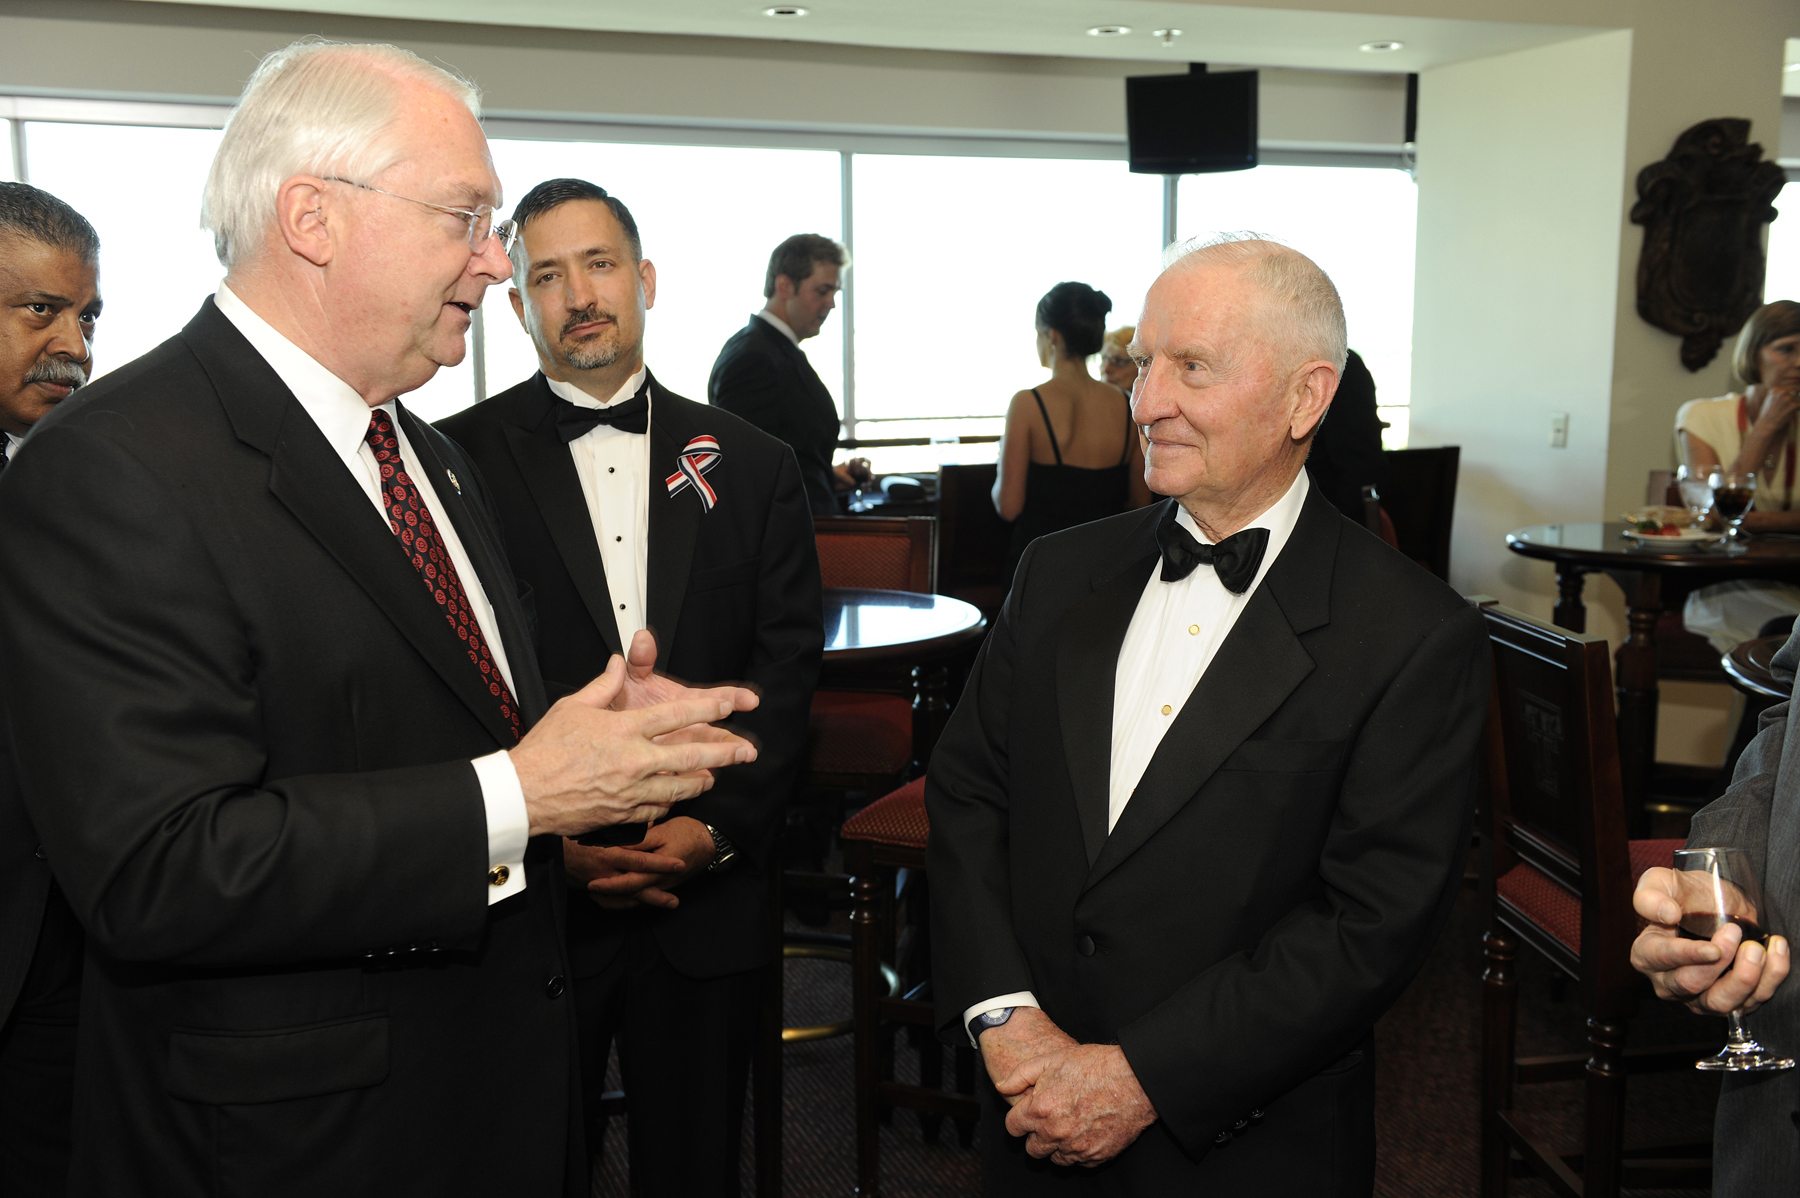 Rep. Randy Neugebauer, Steve Maxner and H. Ross Perot